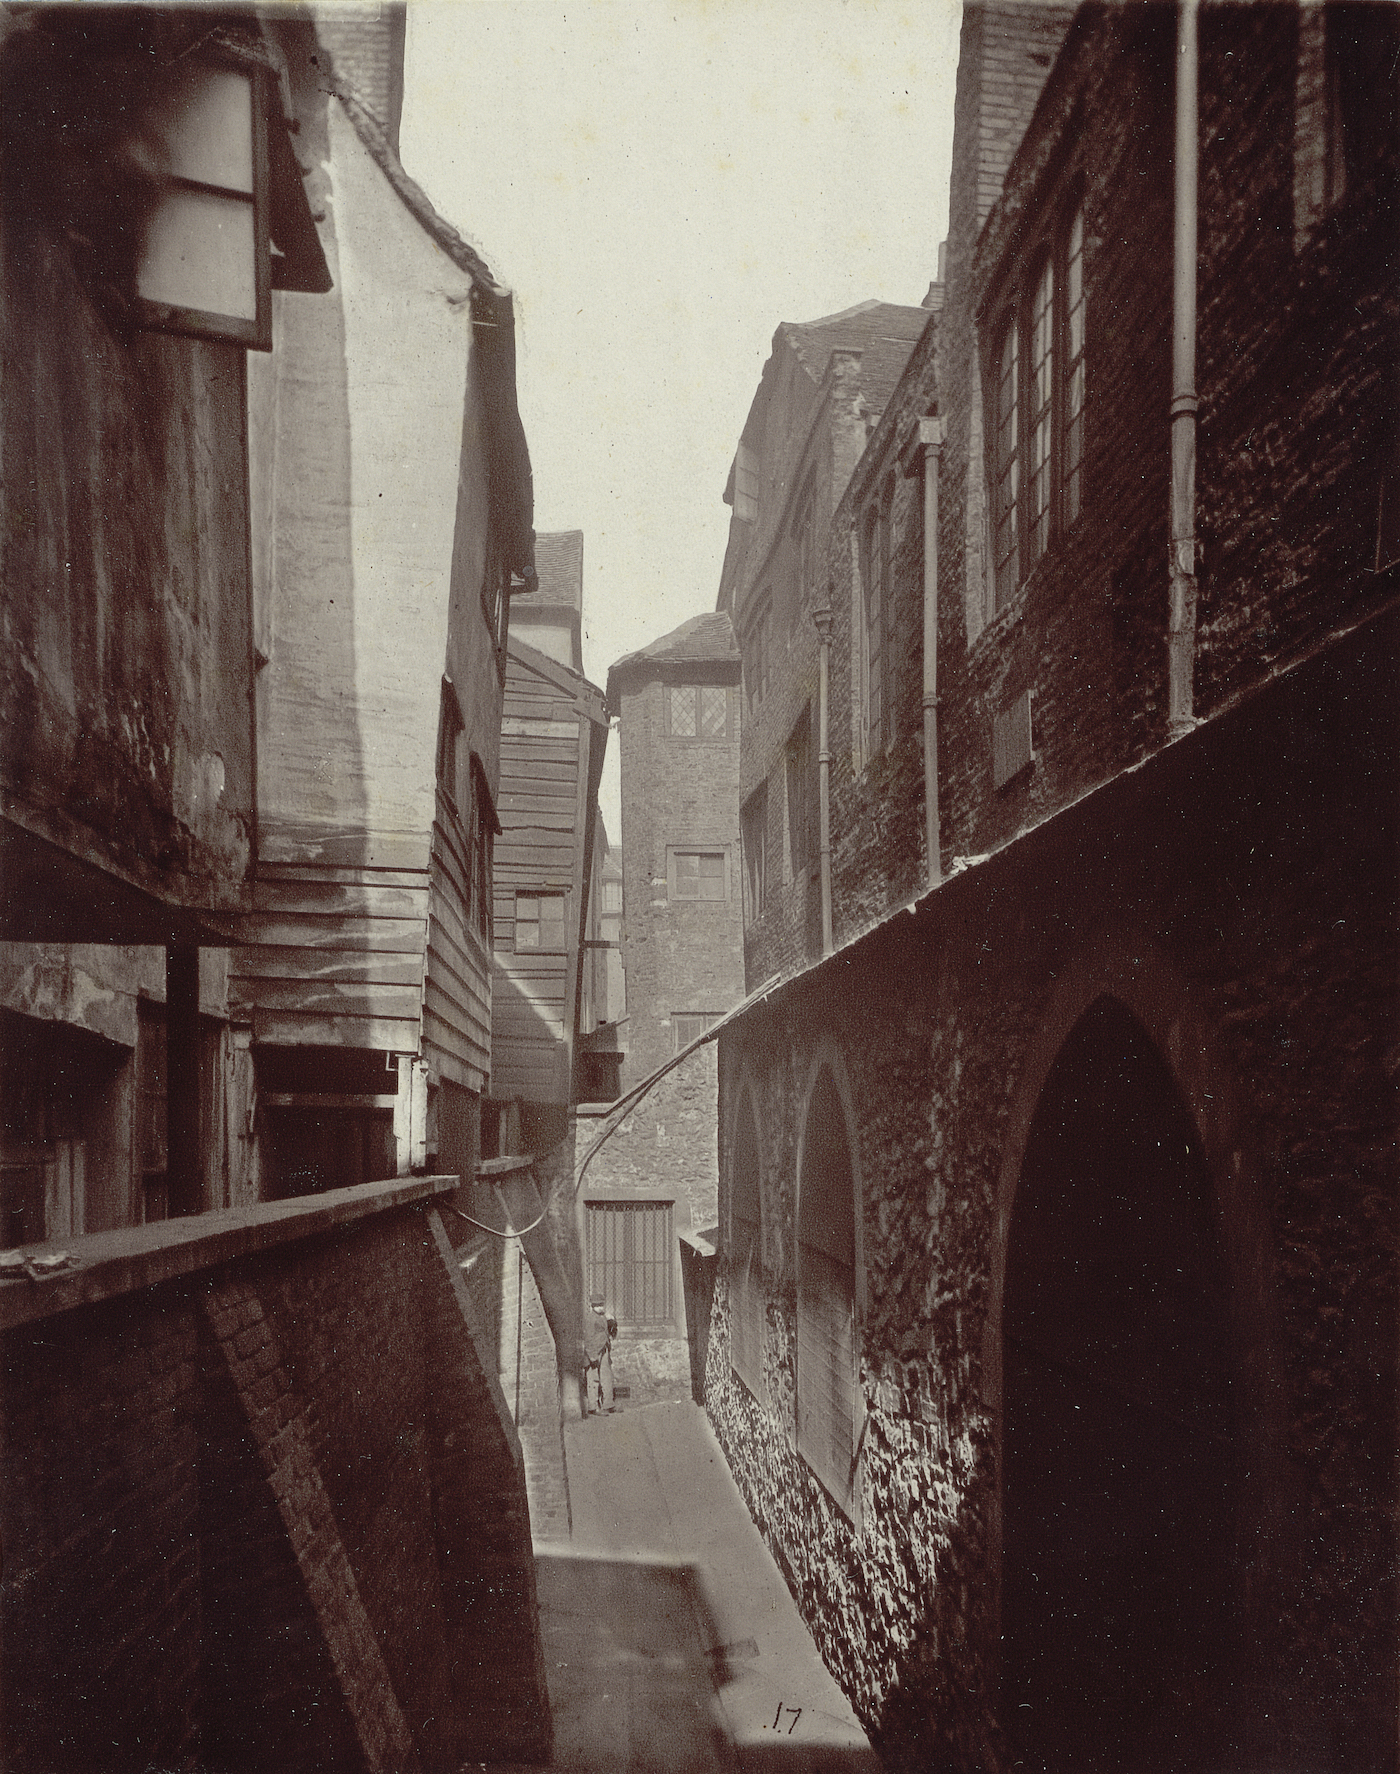 """Alfred and John Bool, no. 17, """"St. Bartholomew the Great and Cloth Fair"""" (1877), carbon print mounted on card, from 'Relics of Old London' (Society for Photographing Relics of Old London, 1875–1886, courtesy Yale Center for British Art, Paul Mellon Collection)"""